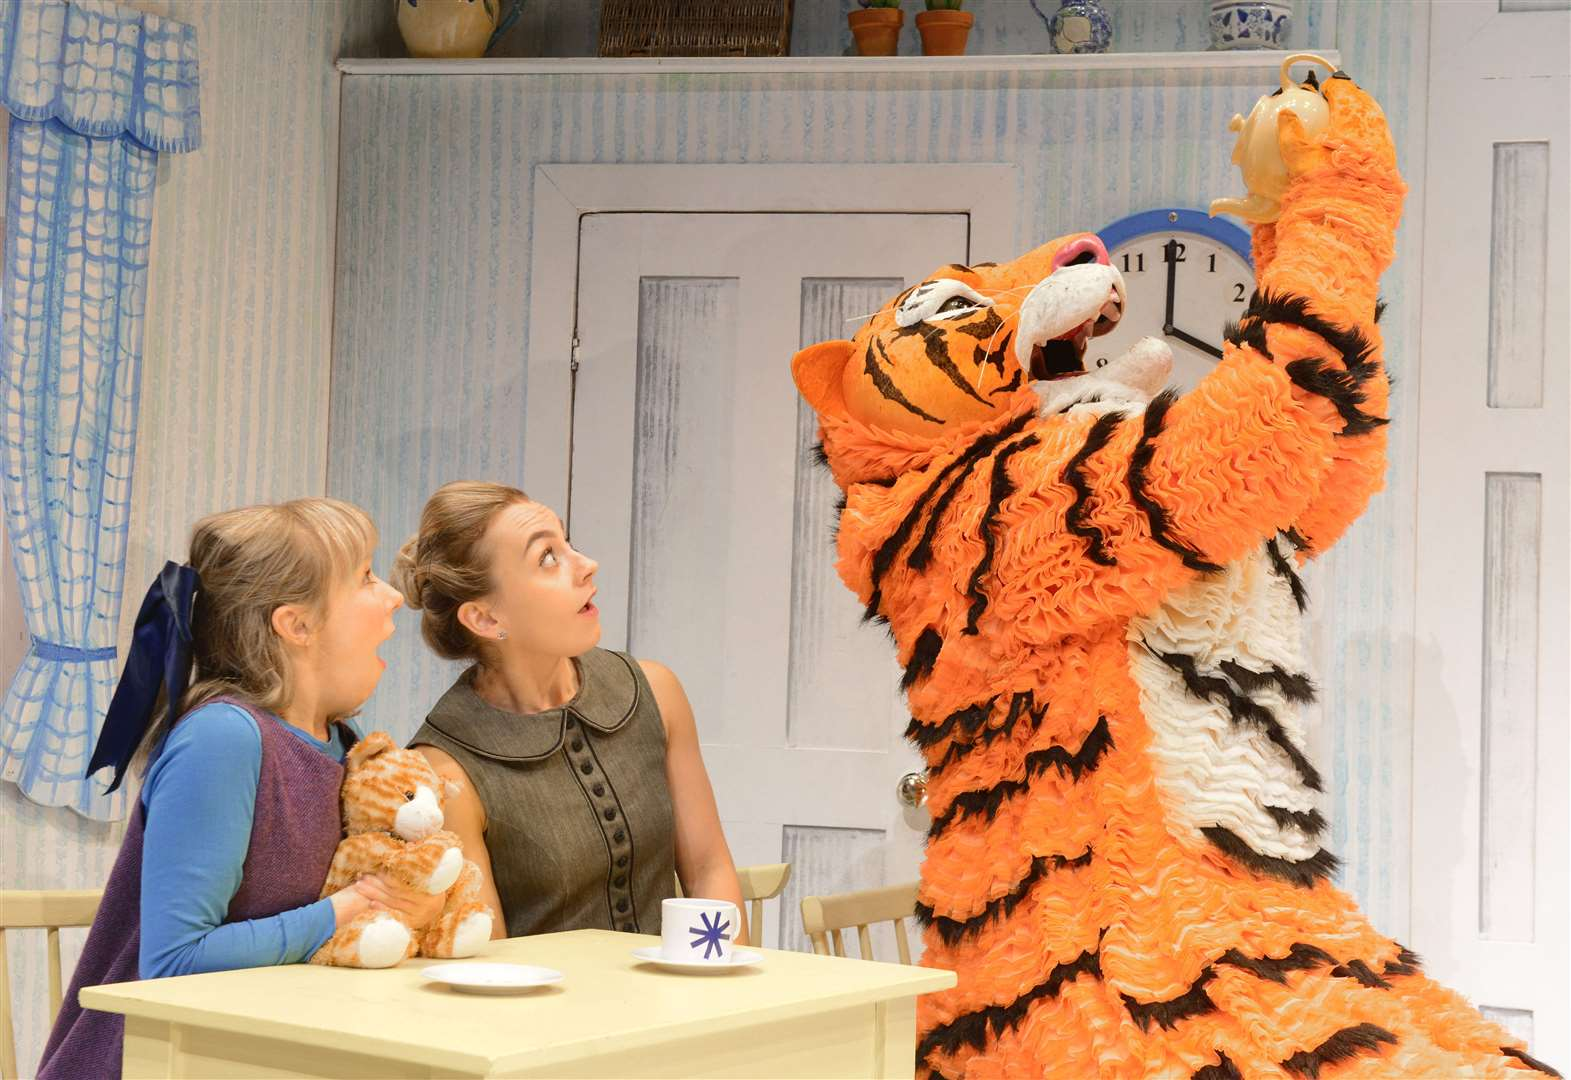 The Tiger Who Came to Tea is coming to Bishop's Stortford